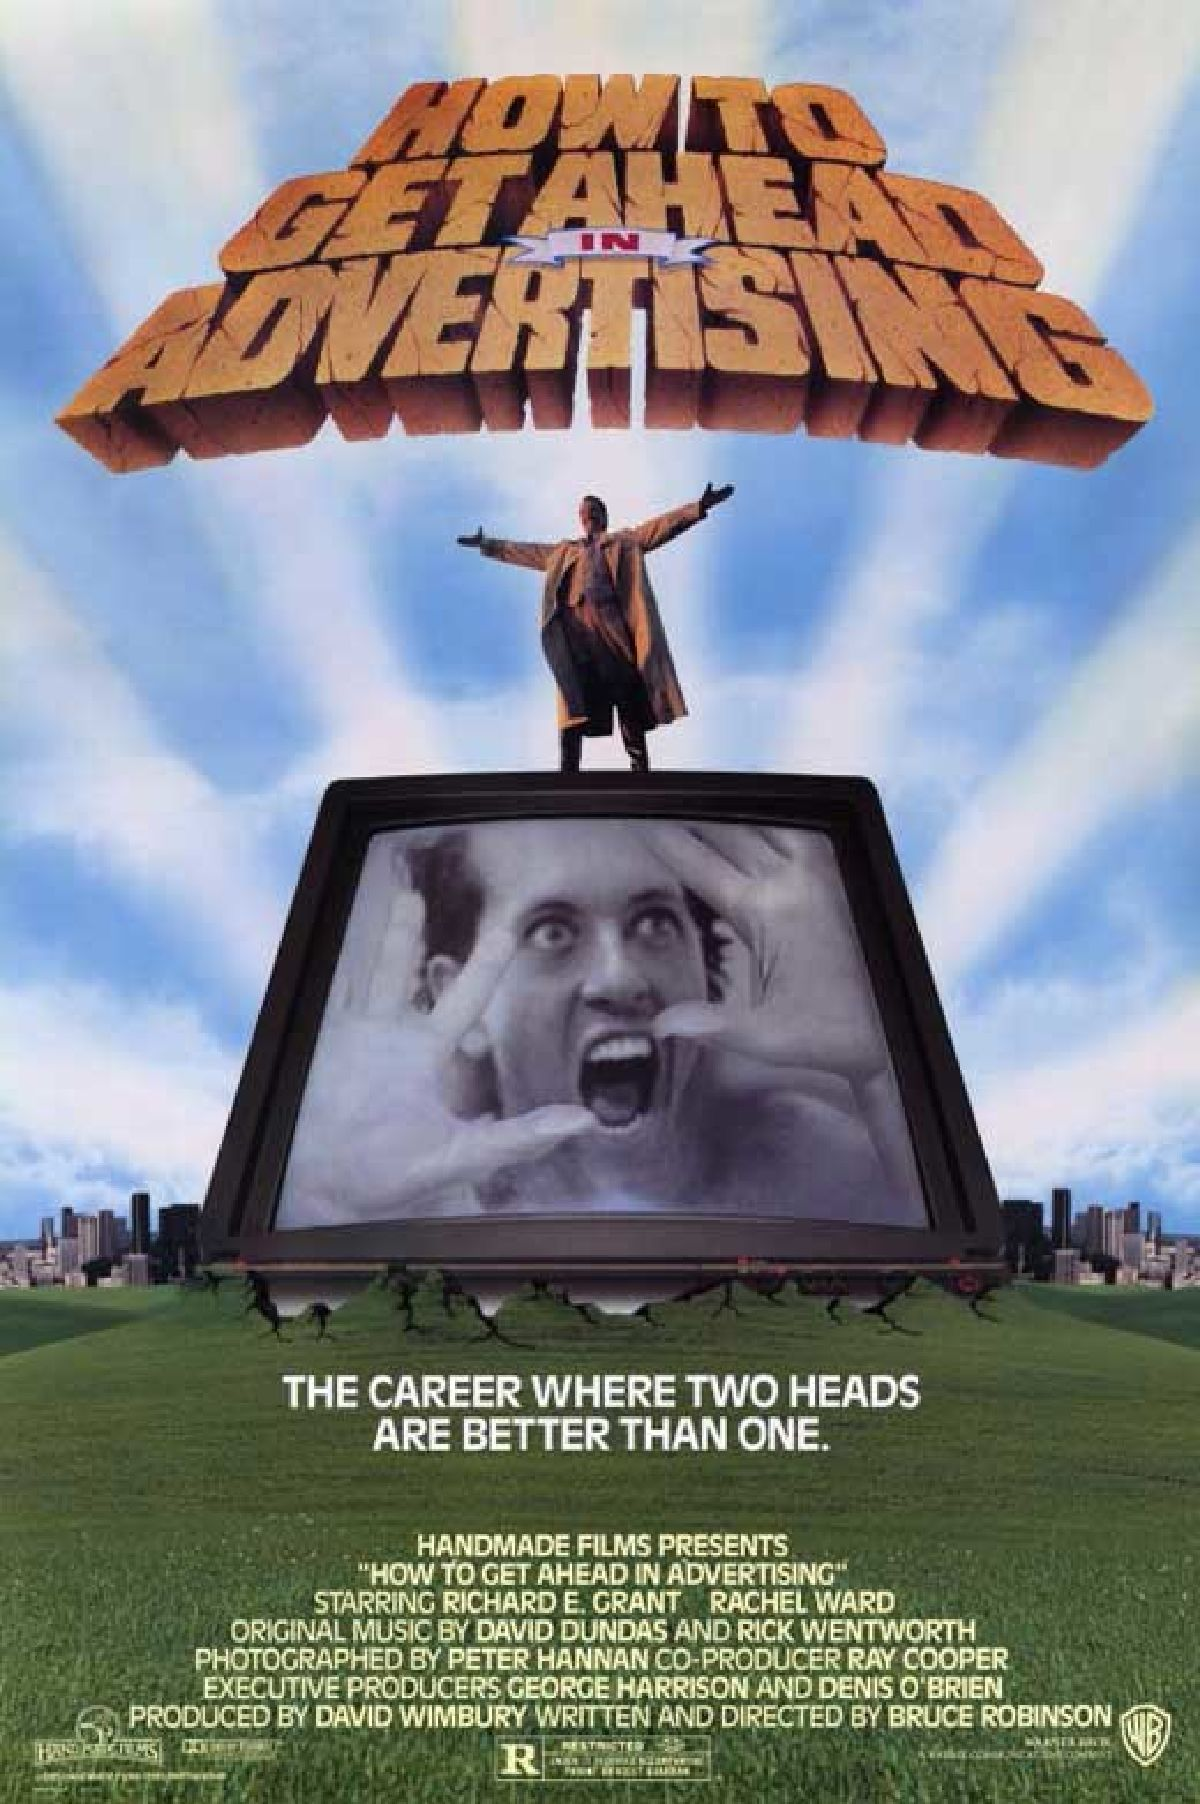 'How To Get Ahead In Advertising' movie poster